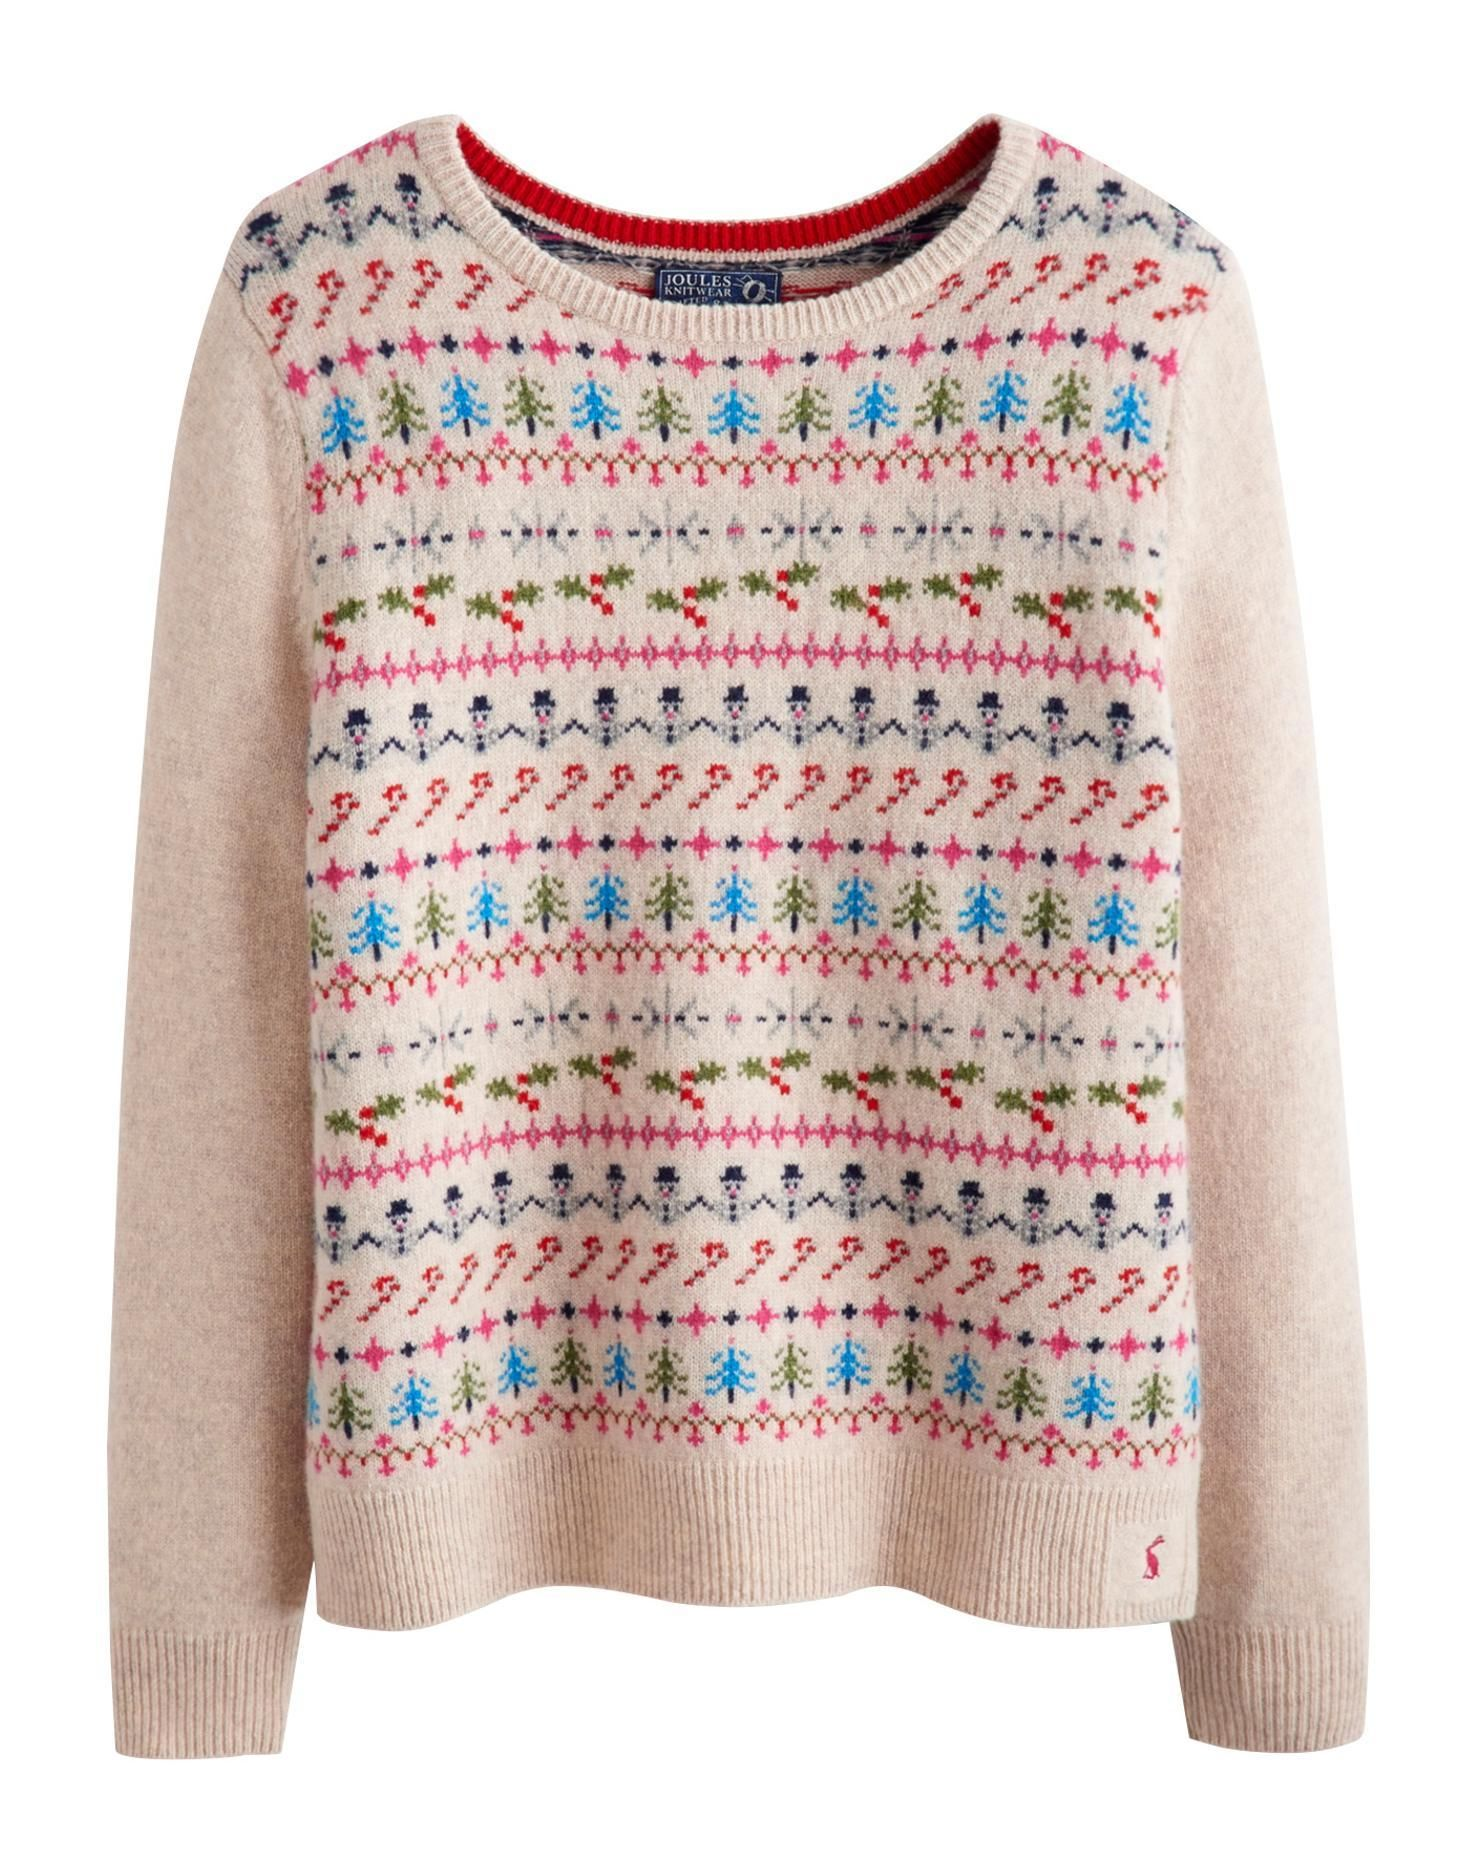 Joules Womens Christmas Intarsia Jumper, Light Grey. If you're ...